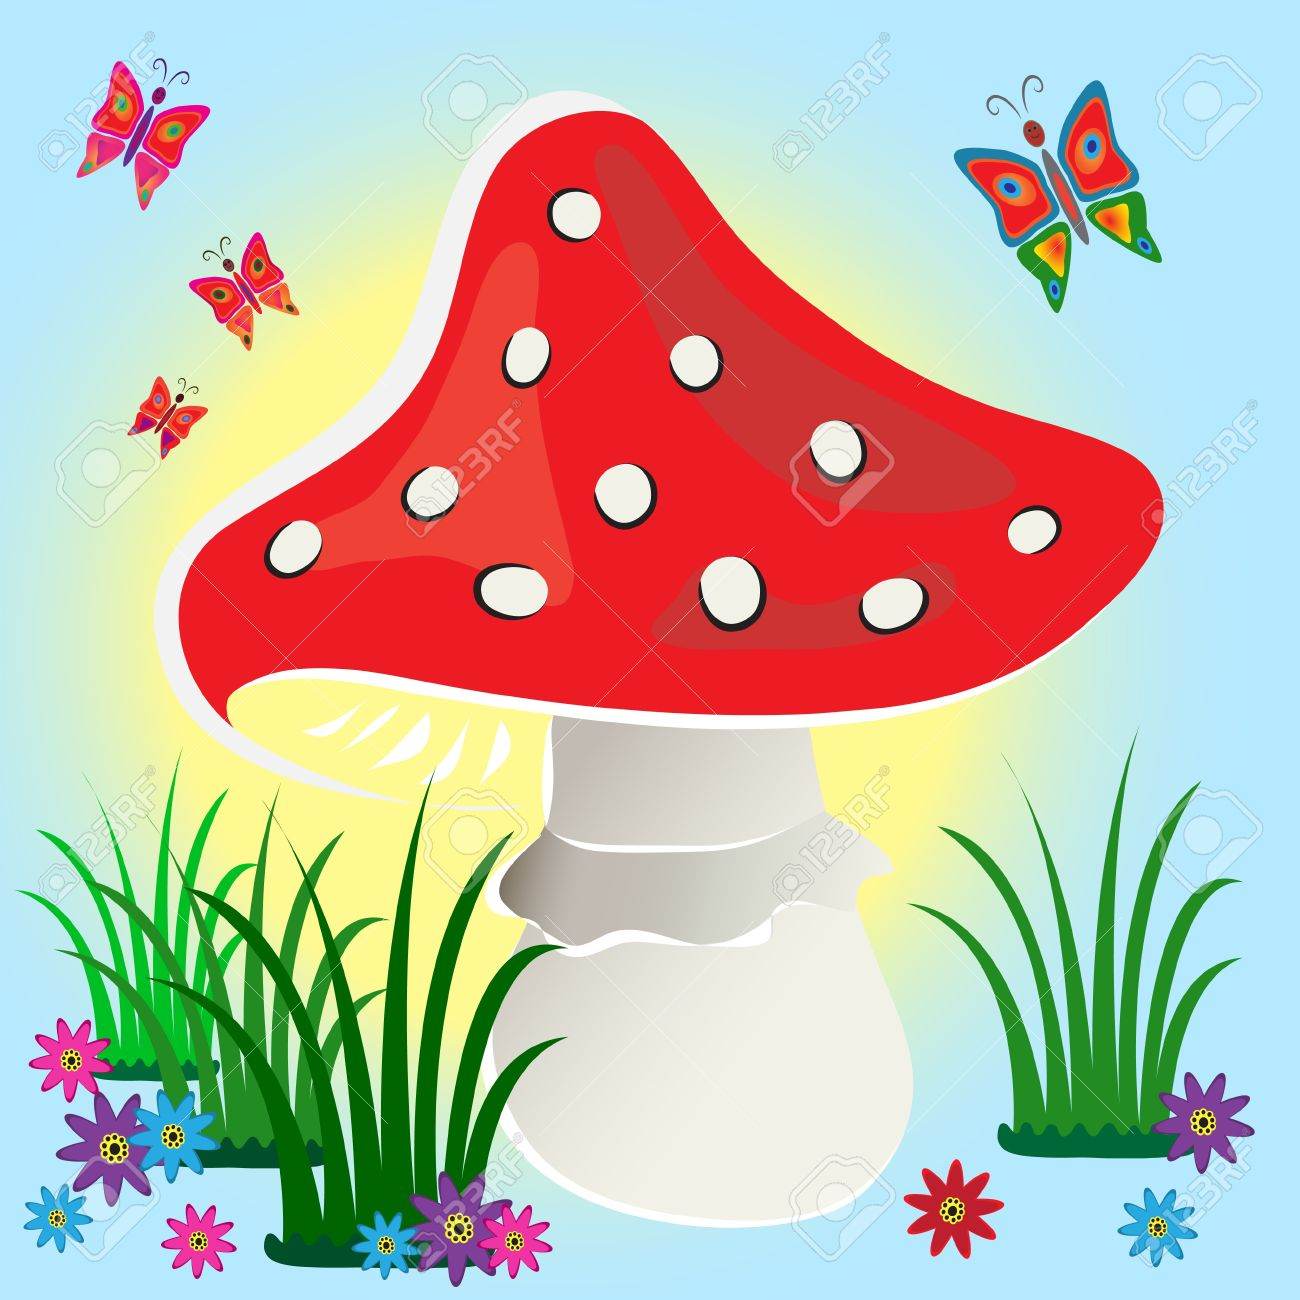 Red Fly Agaric Mushroom On Blue Background With Flowers And.